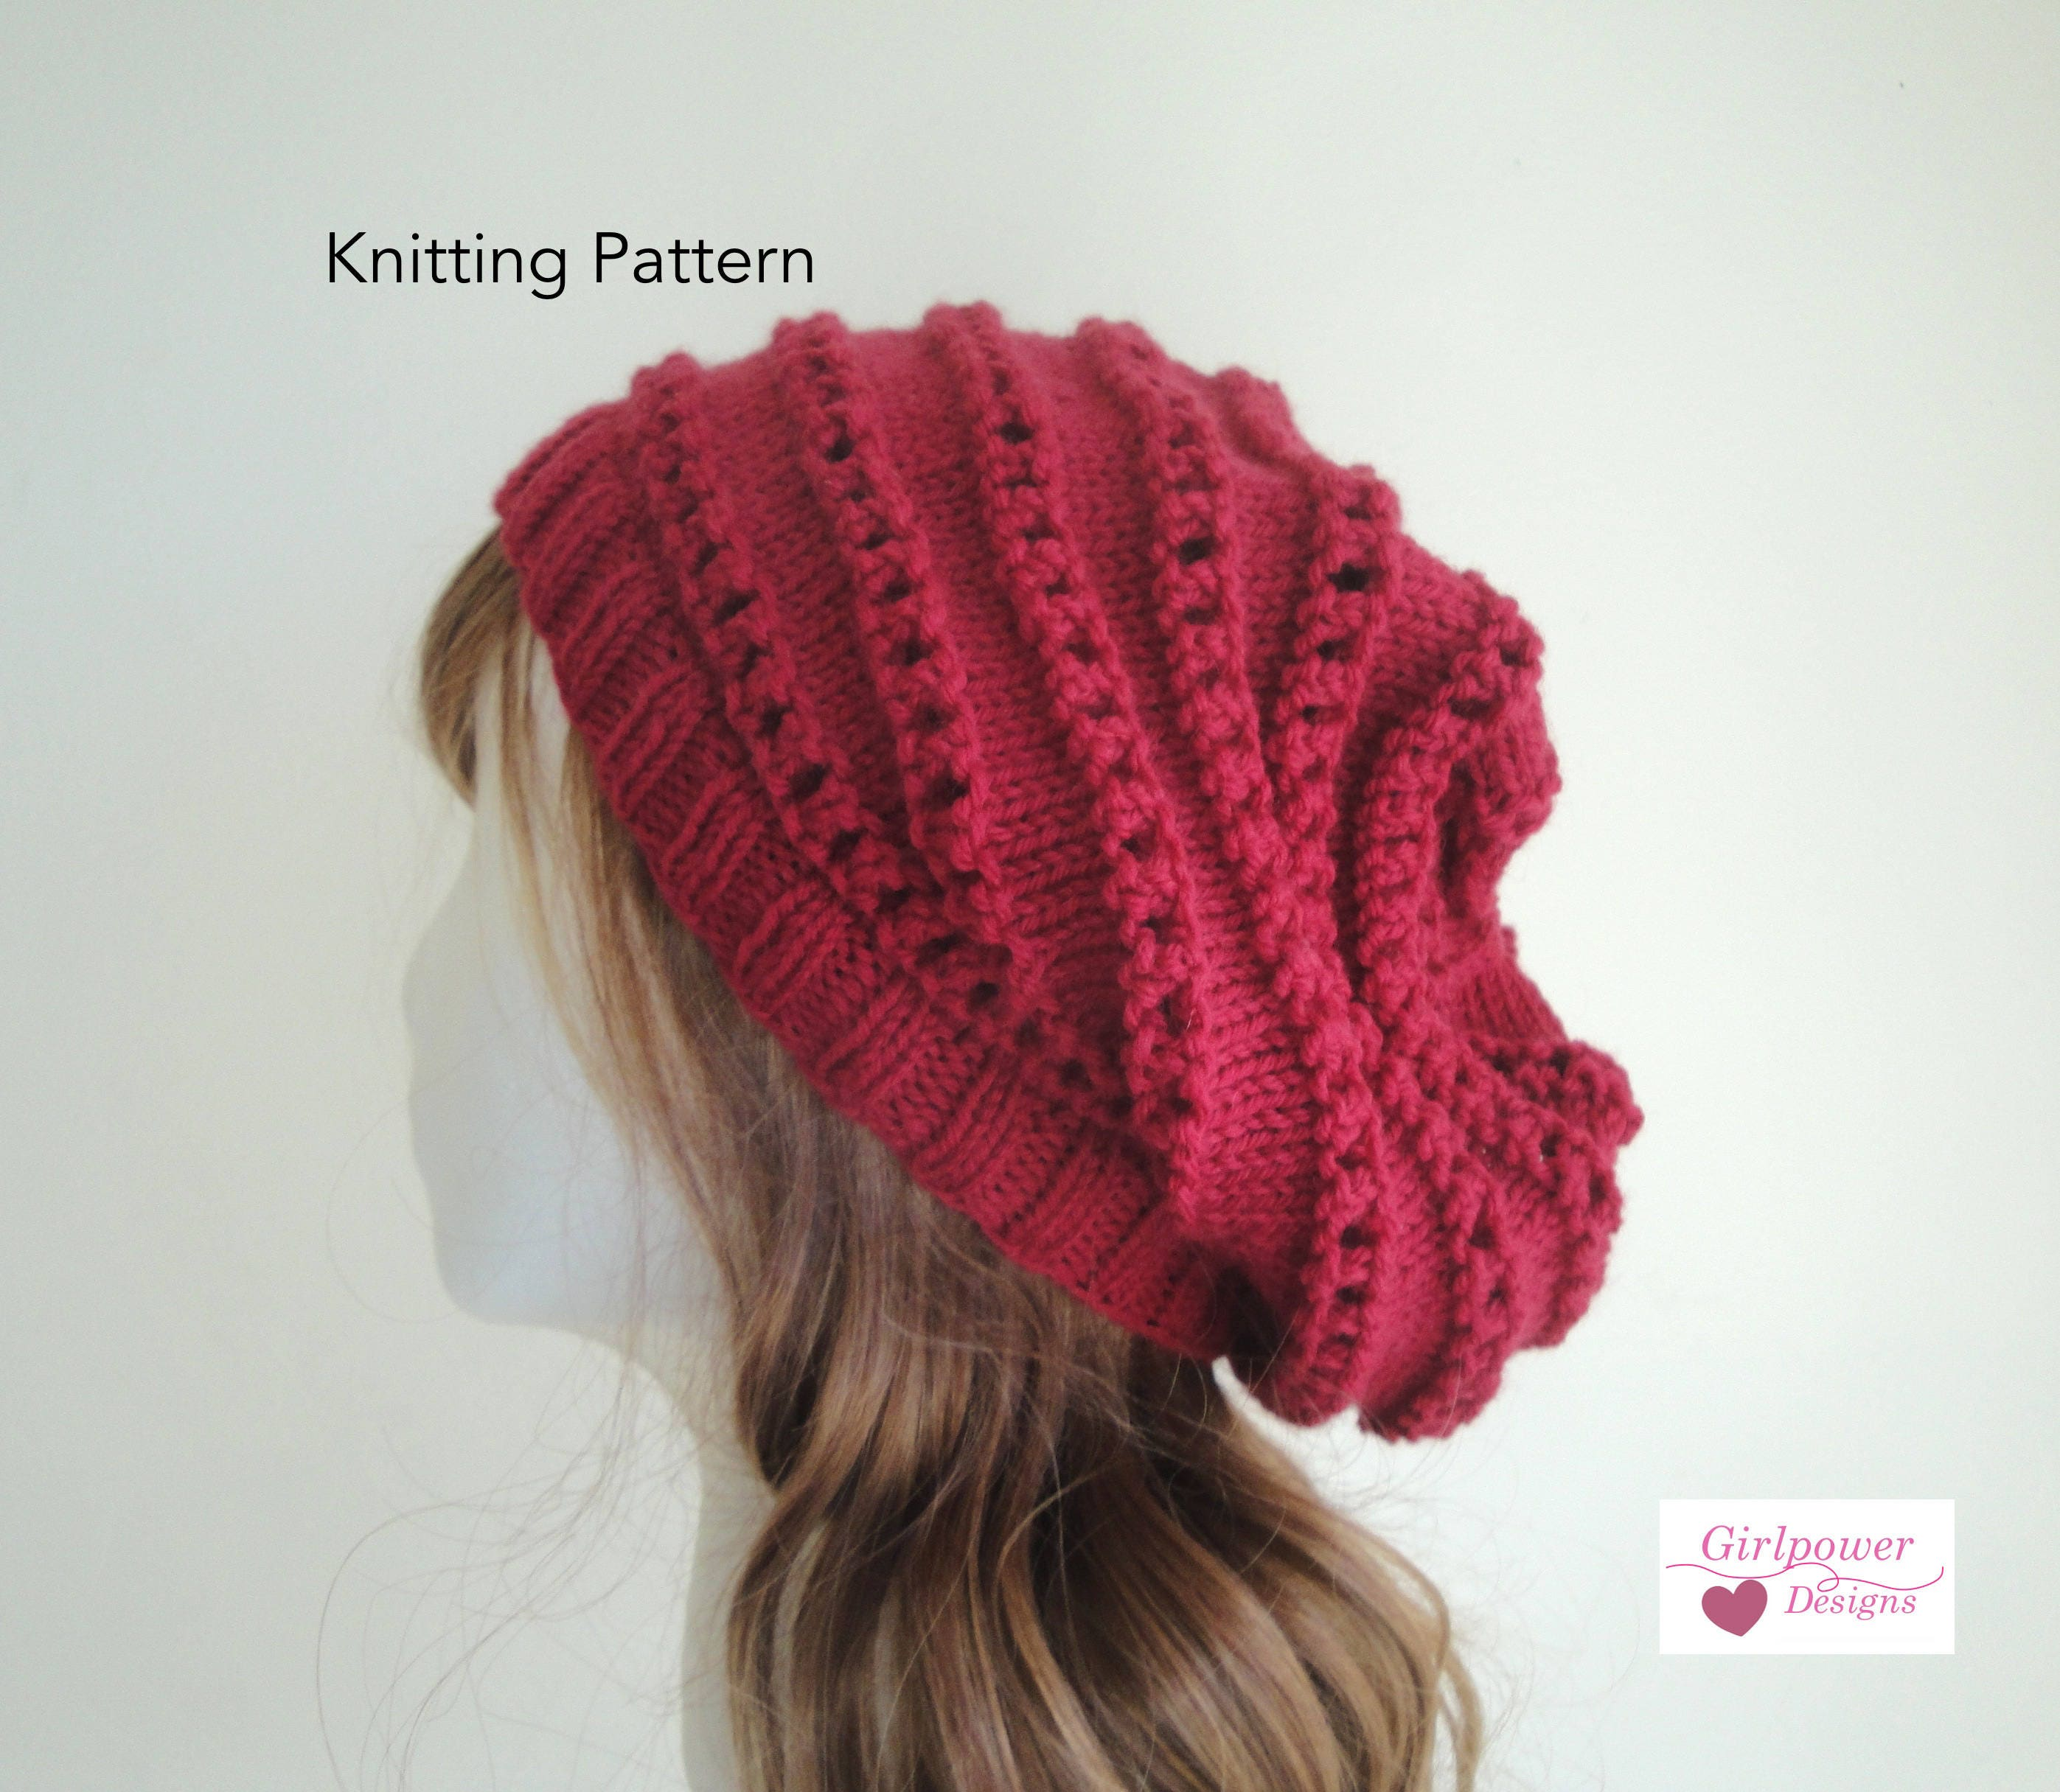 Knitting Pattern Slouch Hat with Ridges, Horizontal Lace, Knit Purl ...